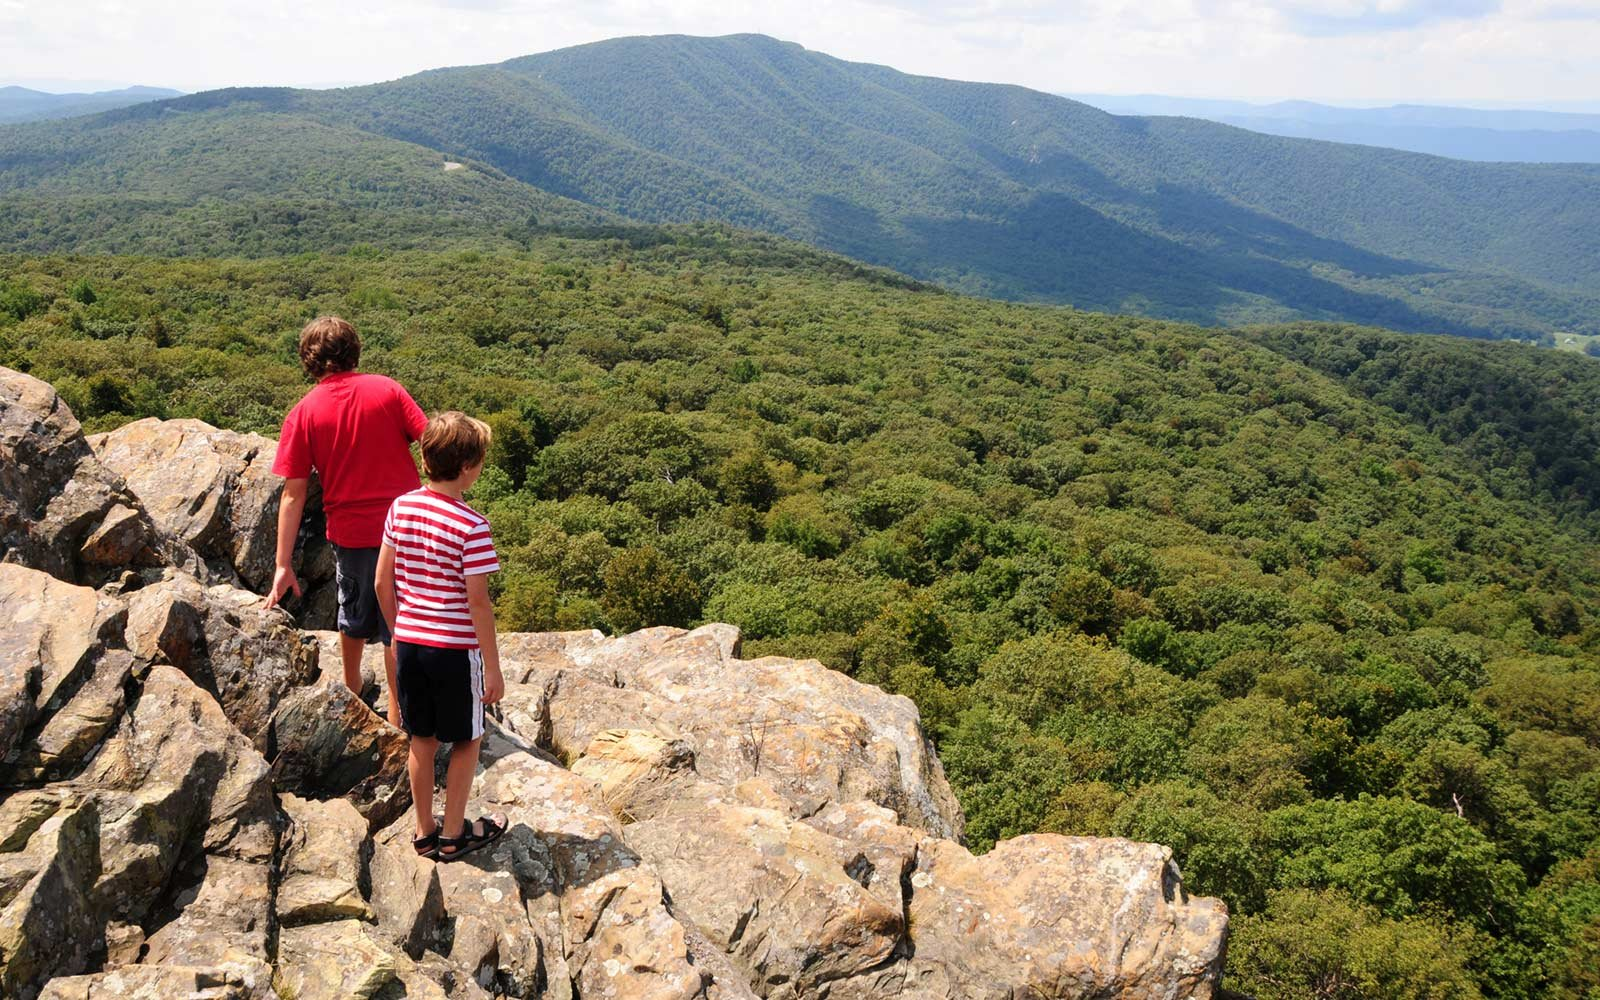 20. Shenandoah National Park